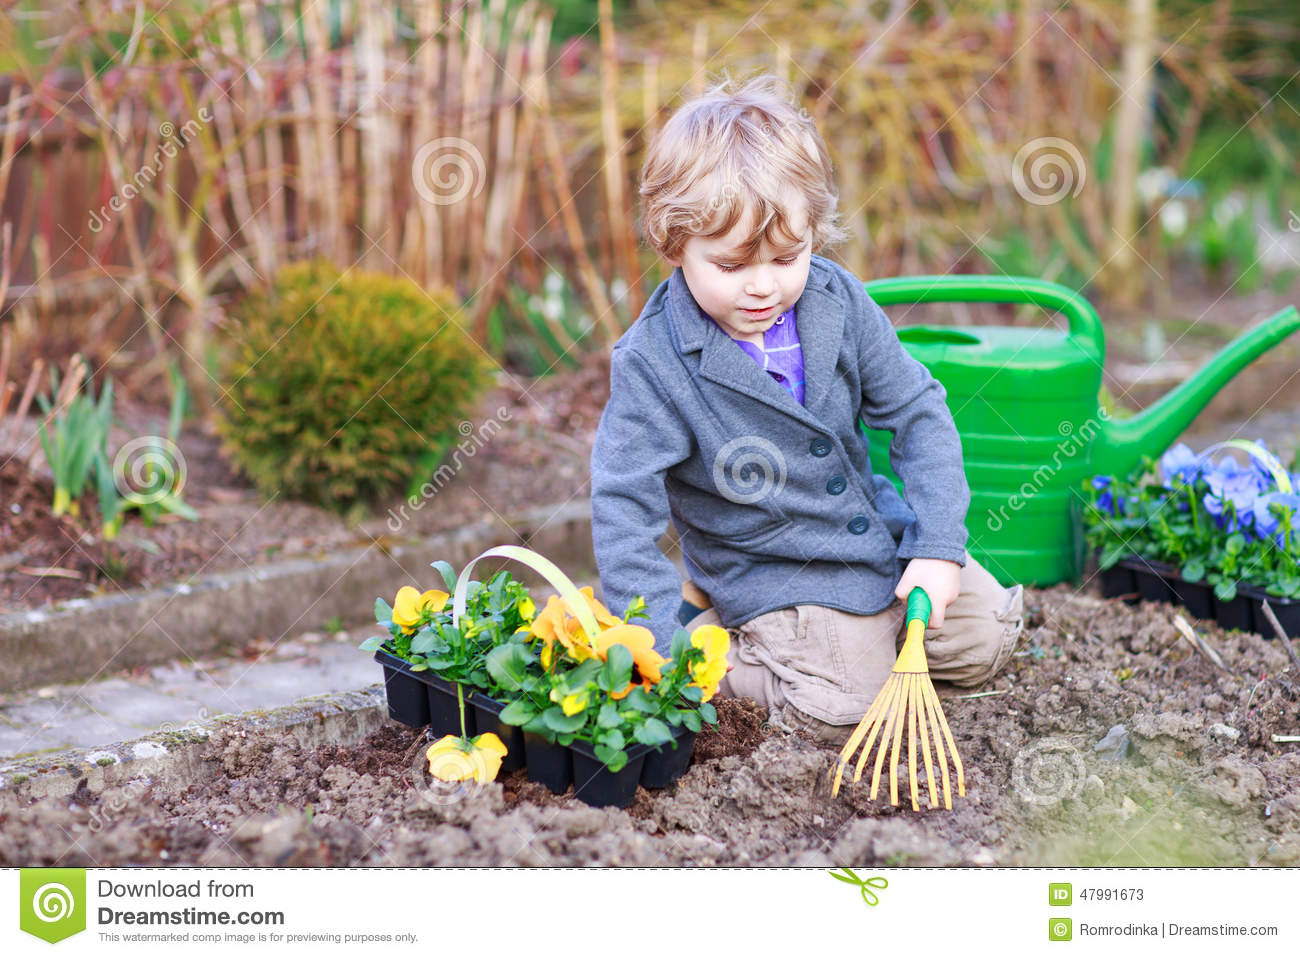 Boy of 2 gardening and planting vegetable plants and flowers in garden